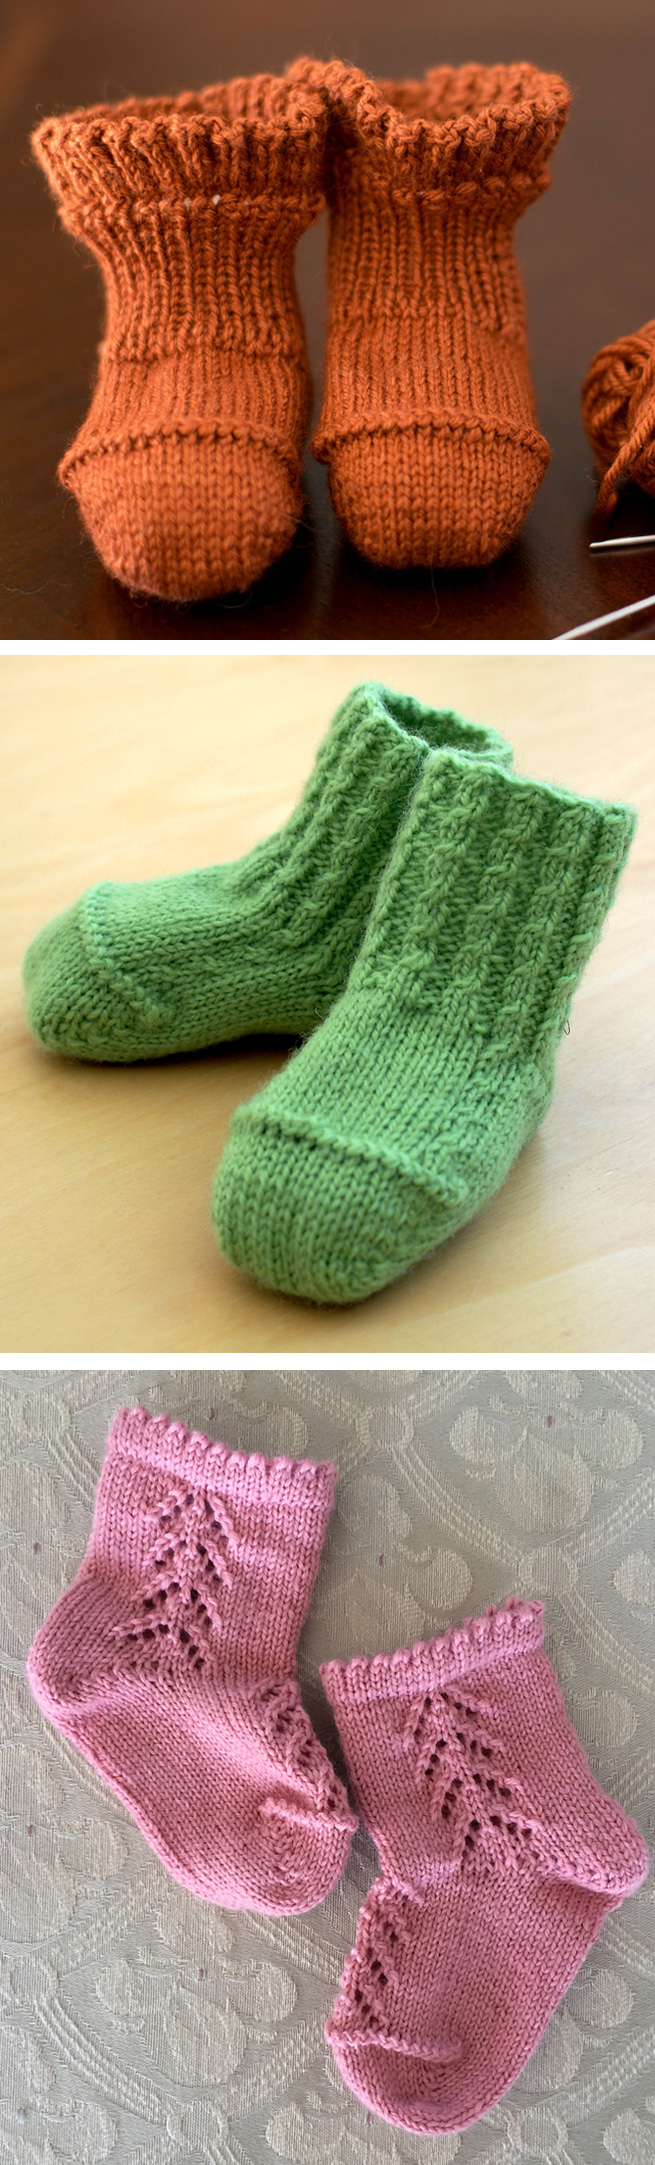 Free Knitting Patterns For Socks On Four Needles Ba Booties Knitting Patterns In The Loop Knitting